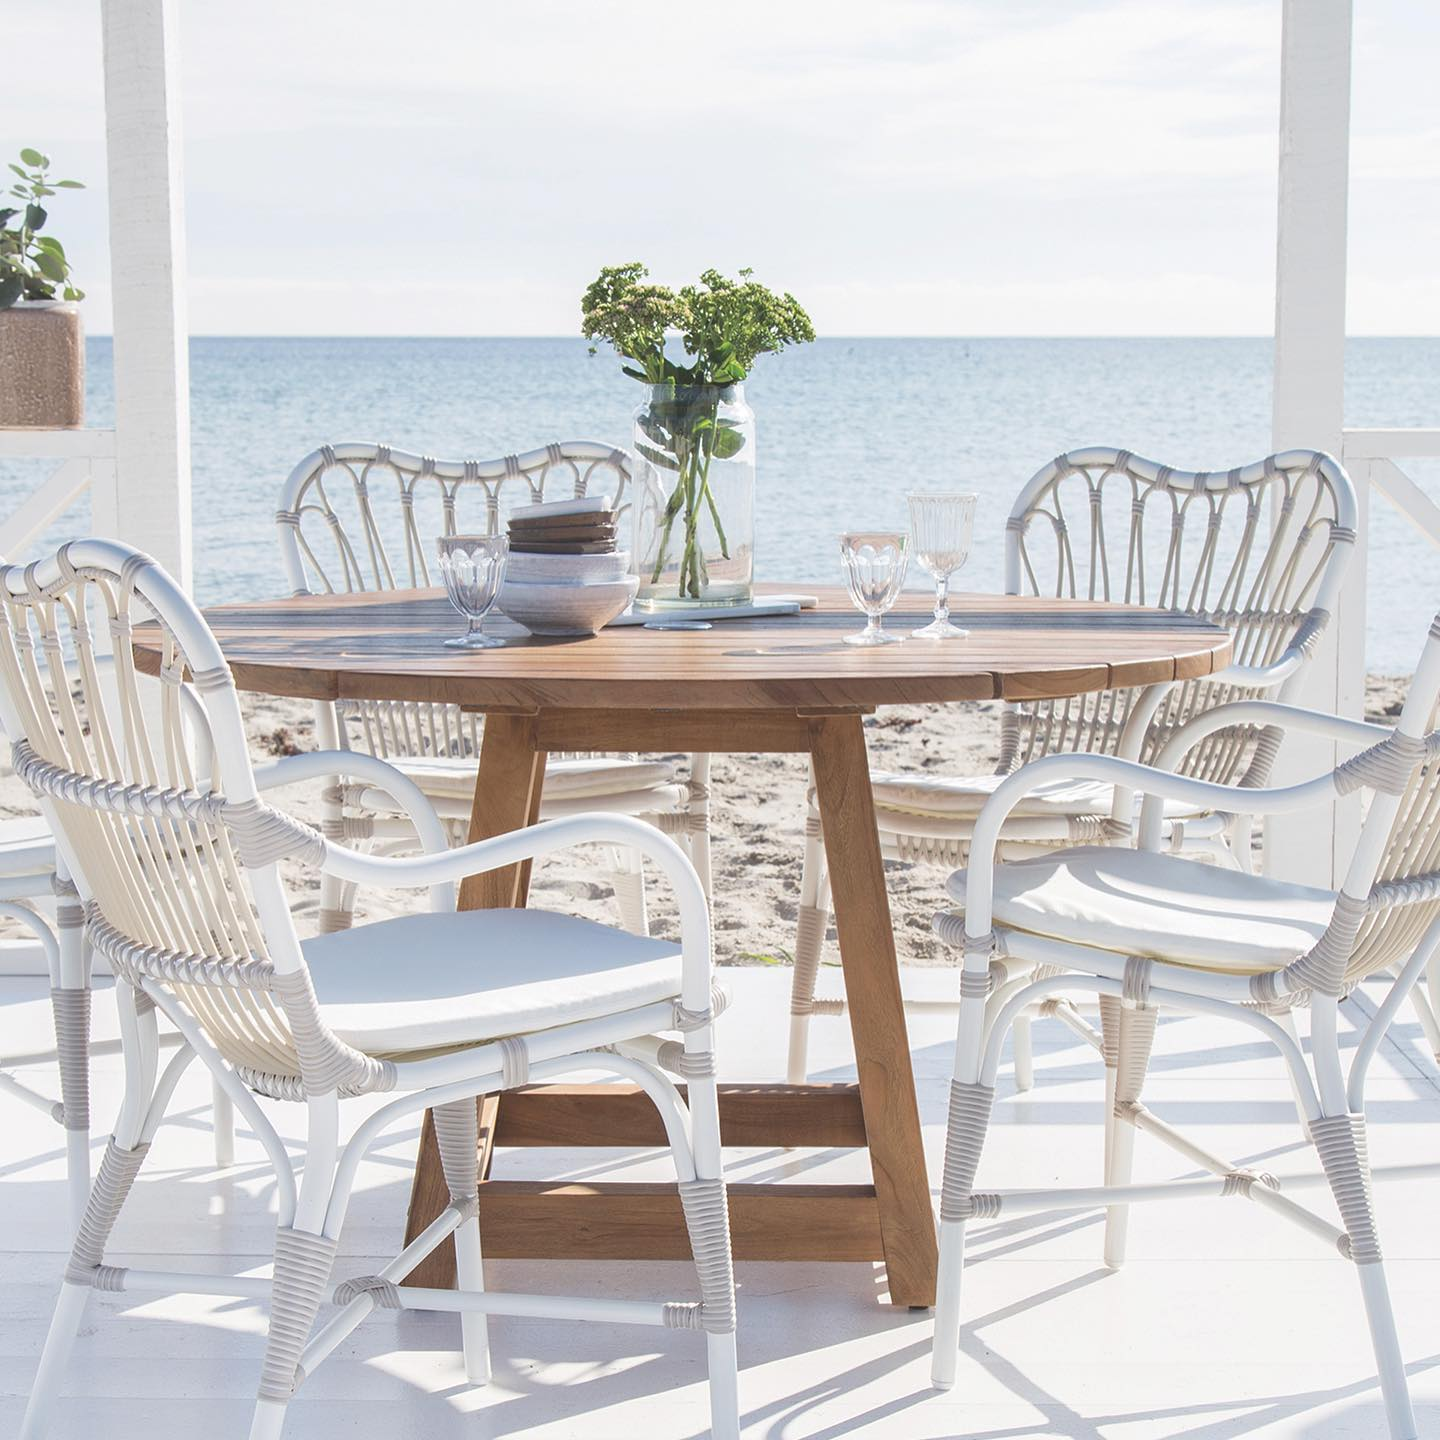 SUMMER OUTDOORS WITH SIKA DESIGN - SIKA teak items are made of old reclaimed teakwood from old houses, or fishing boats. Teak is a close-grained hardwood with a high natural oil content which gives the teak furniture a beautiful smooth surface. This LUCAS EXTENSION TABLE and the GEORGE ROUND TABLE is suitable for interior or exterior. The Lucas extension table extends with a single swing panel in the centre of the table. SIKA's teak furniture is characterized by the warm colour that over time becomes a beautiful classic natural grey colour. . . #outdoors #sikadesign #teak #teaktables #outdoortables #summer #diningtables